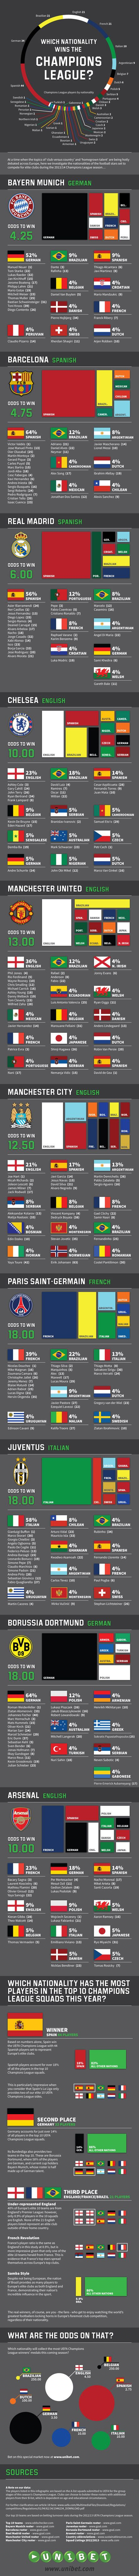 #INFOgraphic > Champions League 2014 Clubs: This graphic presents 10 elite football clubs of UEFA Champions  League and their nationality synthesis along with some predictions on win odds based on club and nationality.  > http://infographicsmania.com/champions-league-2014-clubs/?utm_source=Pinterest&utm_medium=INFOGRAPHICSMANIA&utm_campaign=SNAP